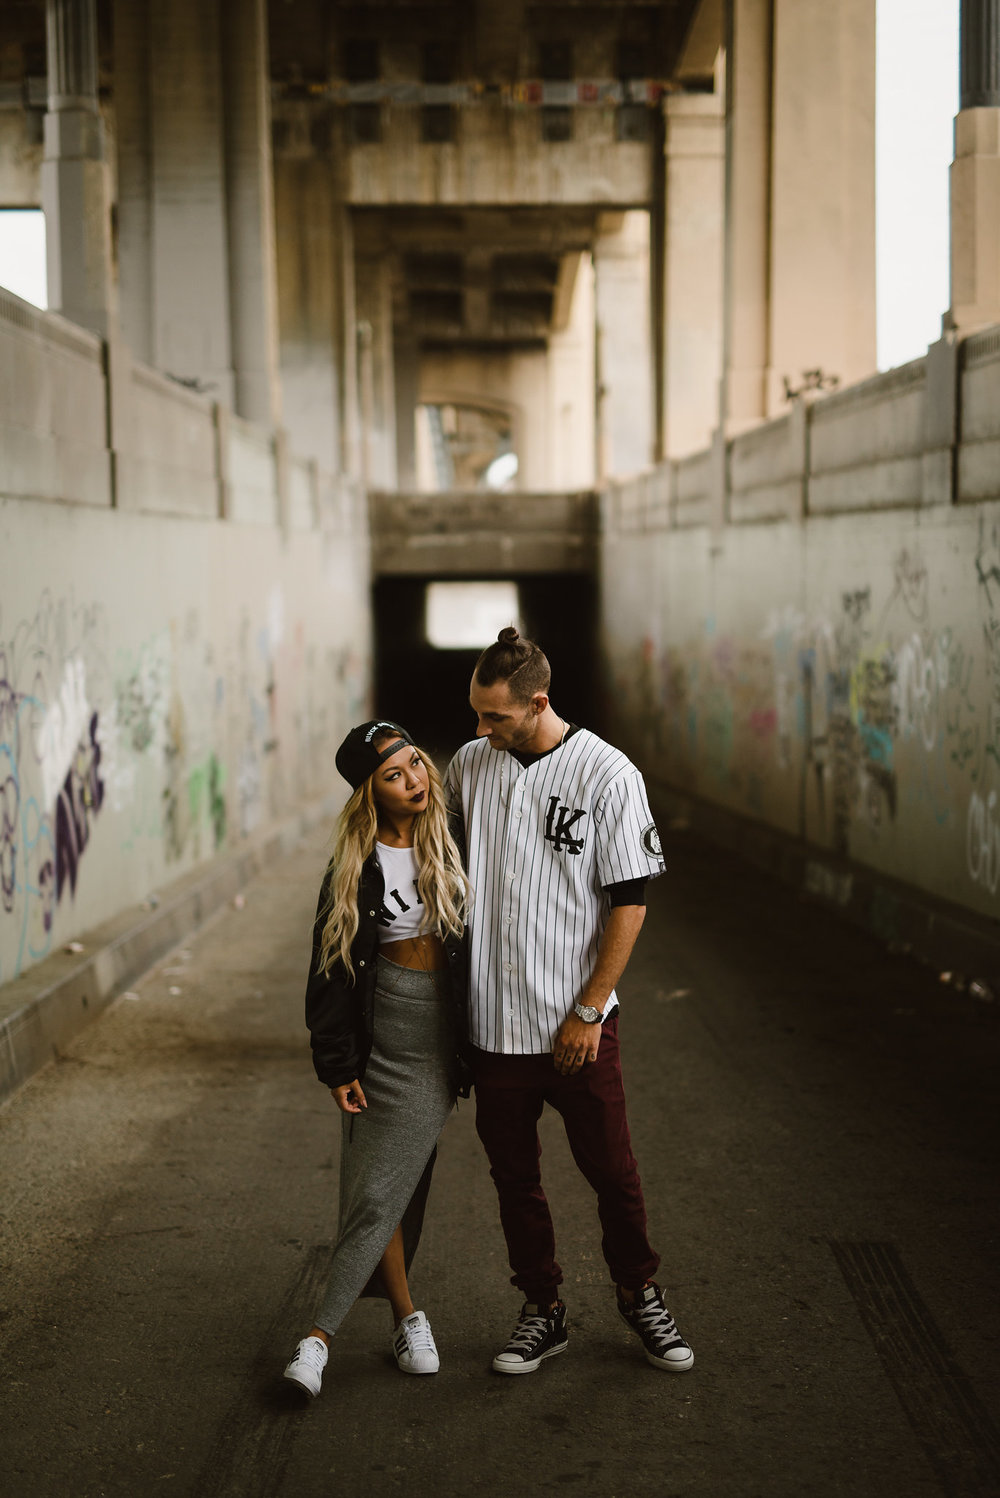 Isaiah-&-Taylor-Photography---Isabel-&-Vincent,-Los-Angeles-Engagement---WEB-257.jpg